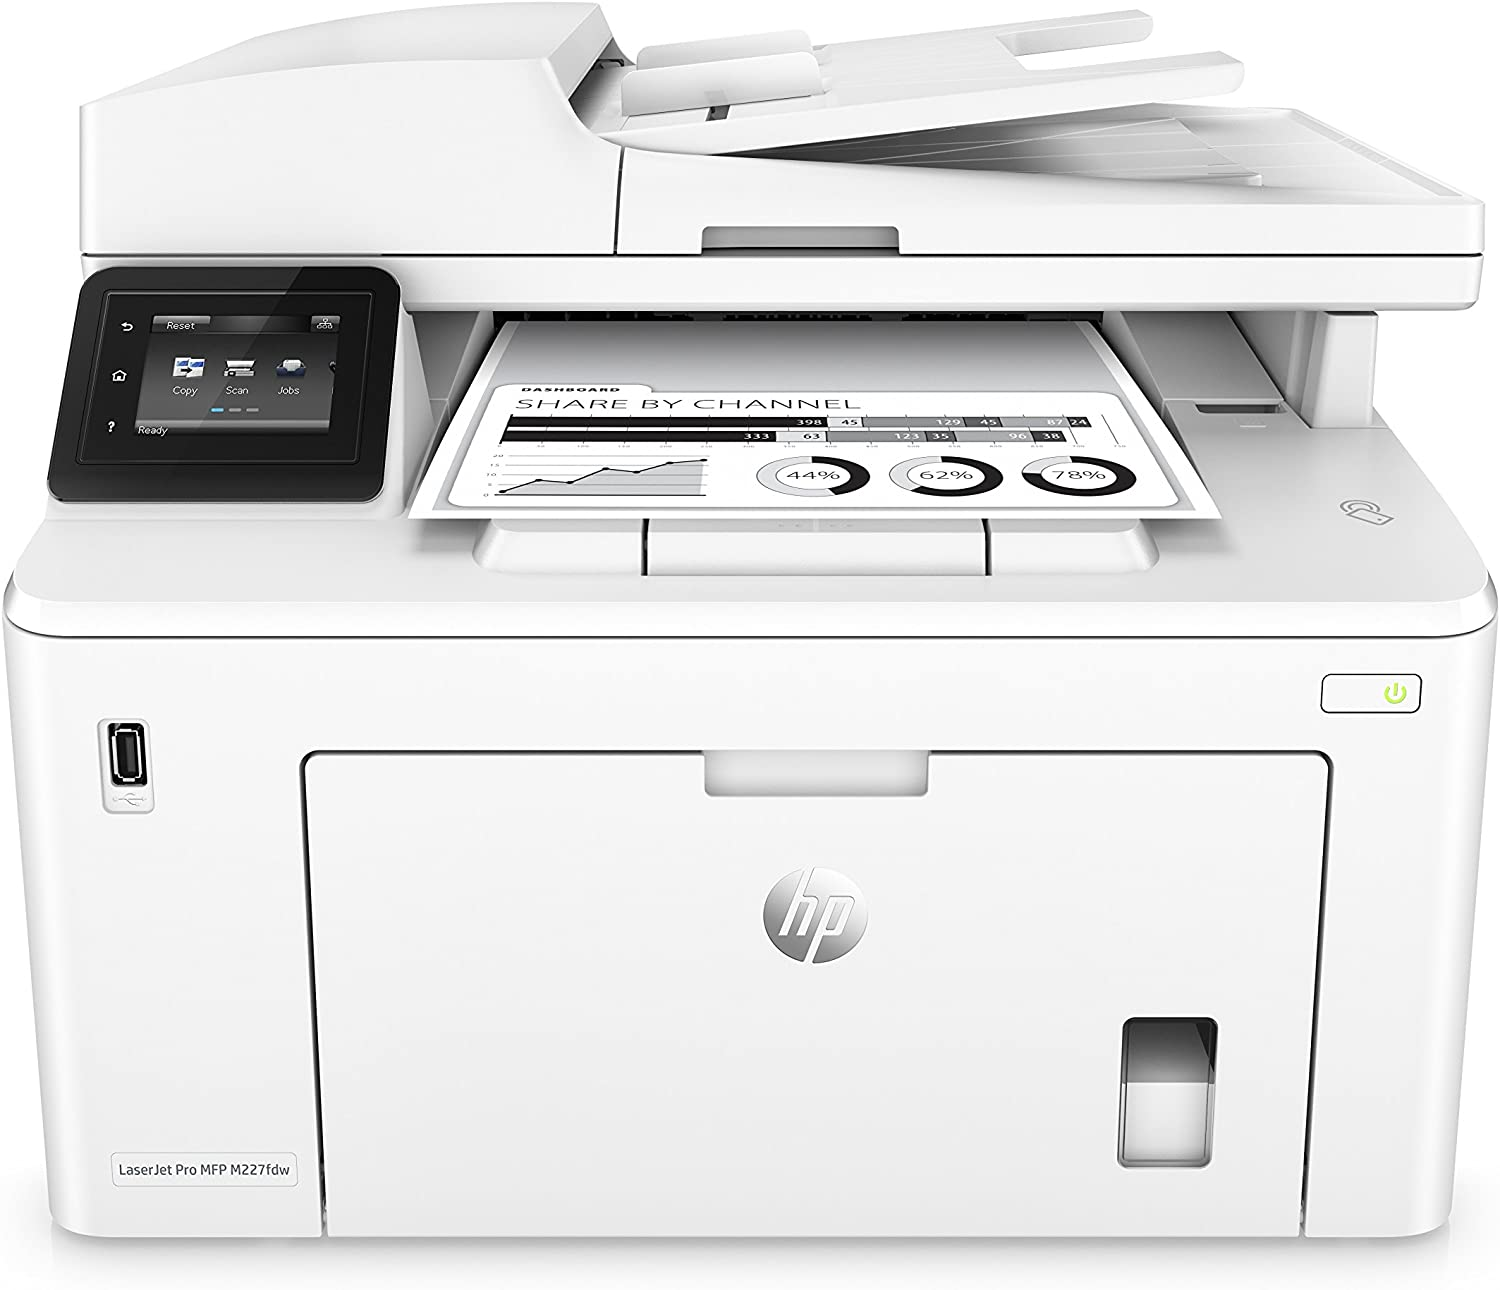 Hp Laserjet Pro Mfp m227fdw Review and buyers guide